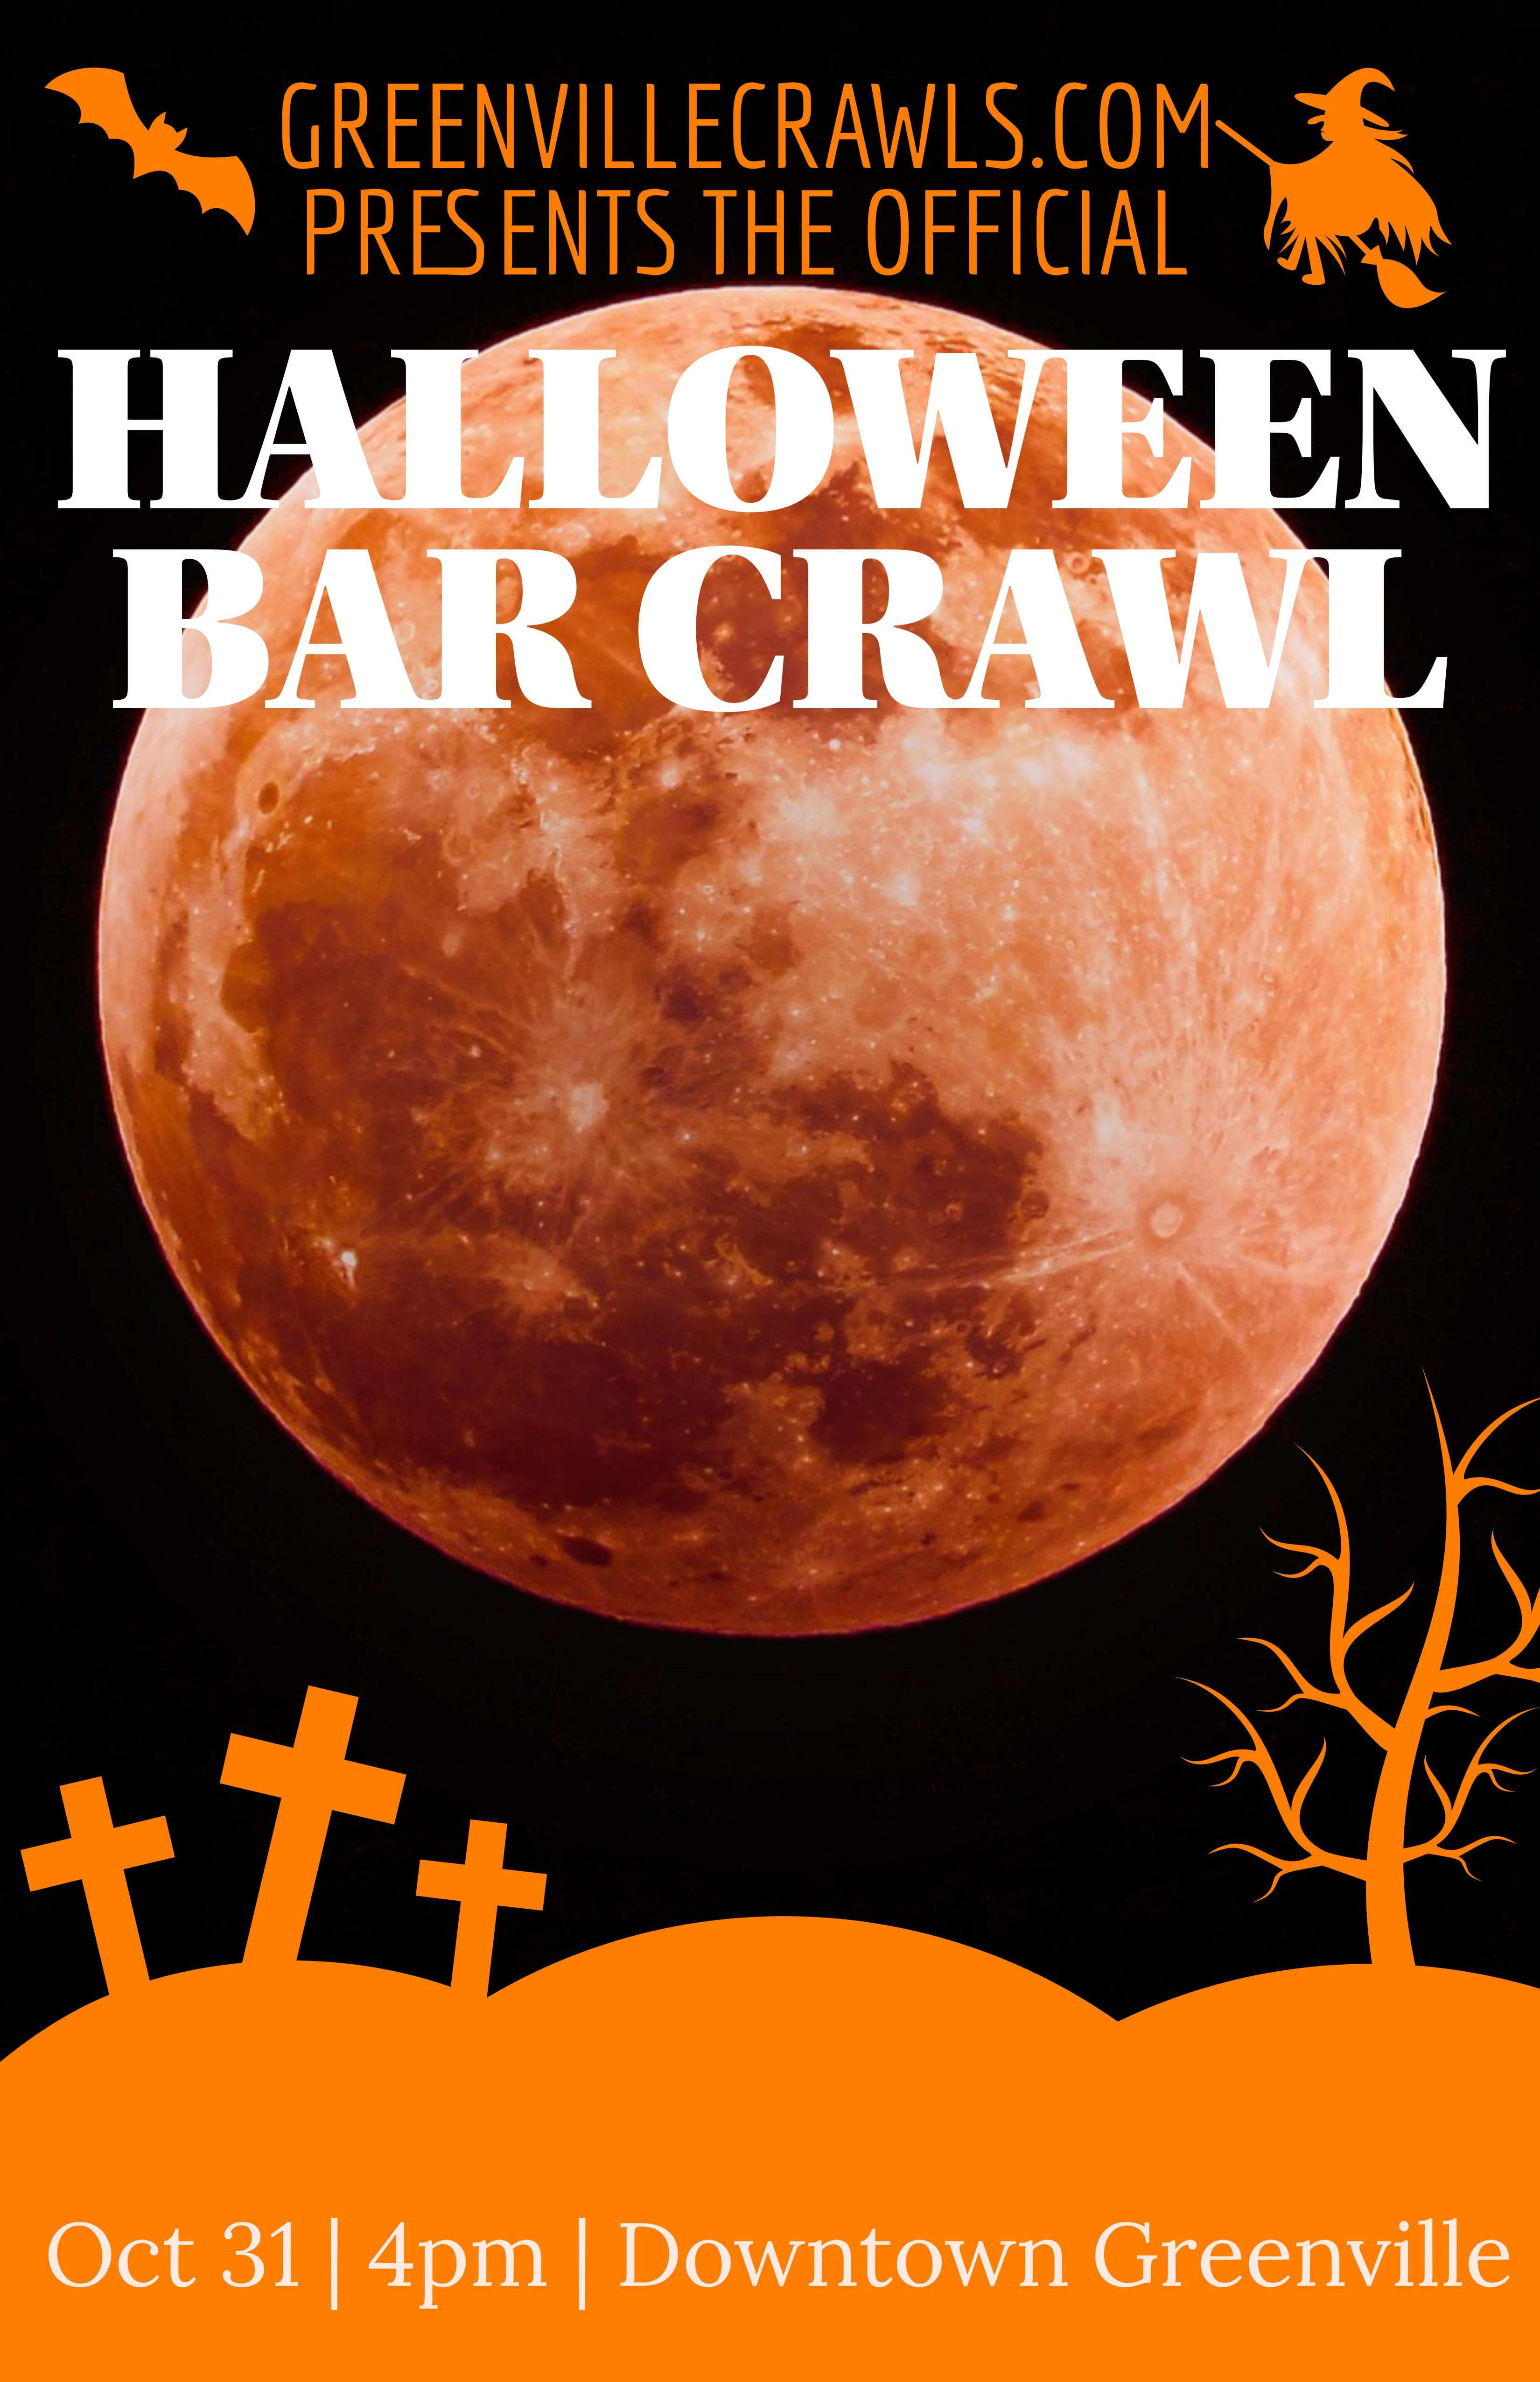 Greenville 2020 Halloween Halloween Bar Crawl   Greenville   31 OCT 2020